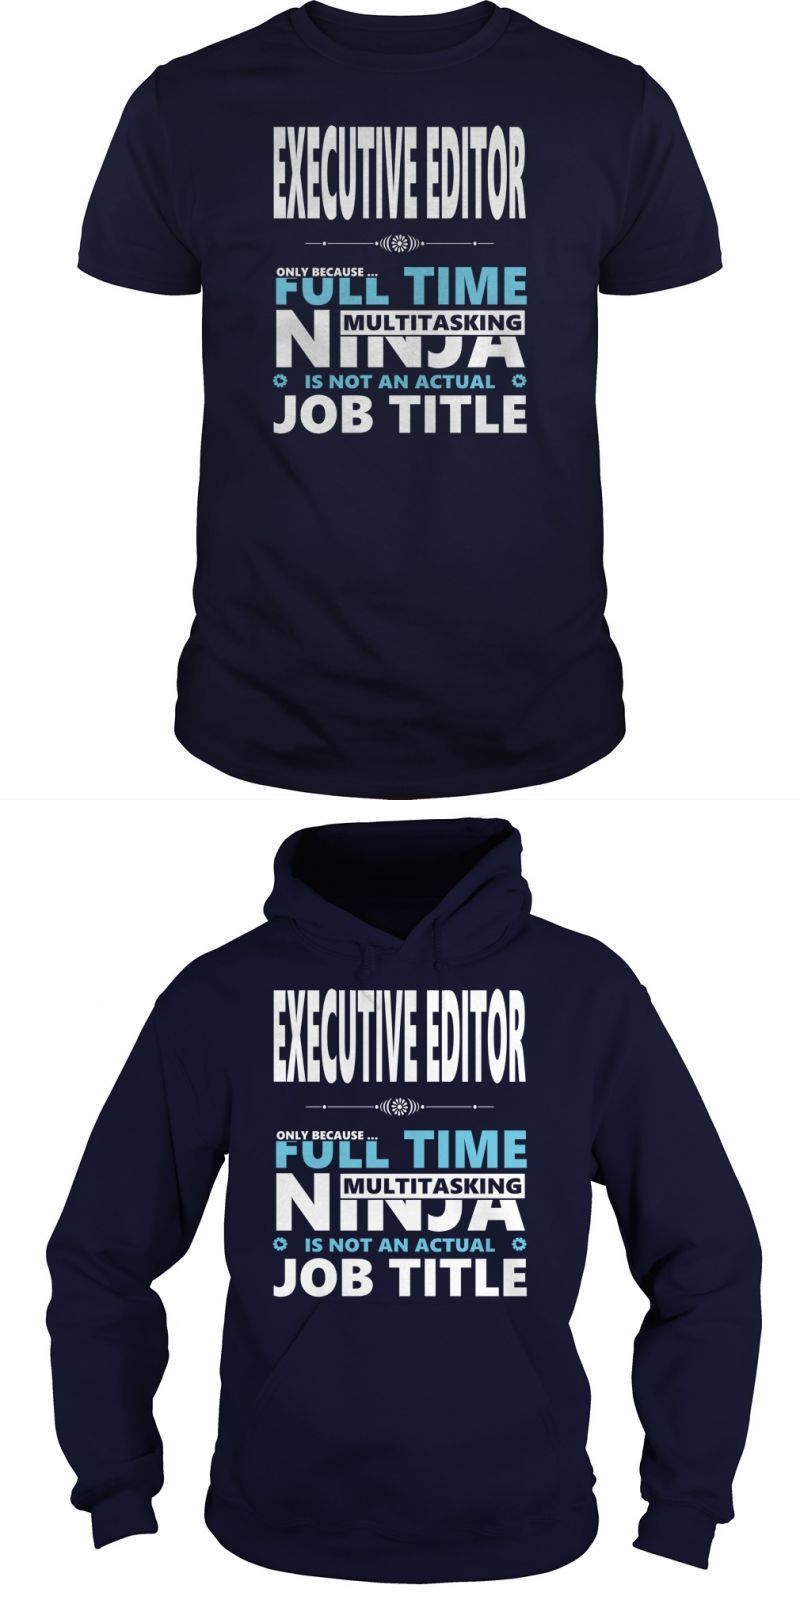 EXECUTIVE EDITOR JOBS T SHIRT GUYS LADIES YOUTH TEE HOODIE SWEAT SHIRT  V NECK UNISEX SUNFROG BESTSELLER...FIND YOUR JOB HERE: Guys Tee Hoodie  Sweat Shirt ...